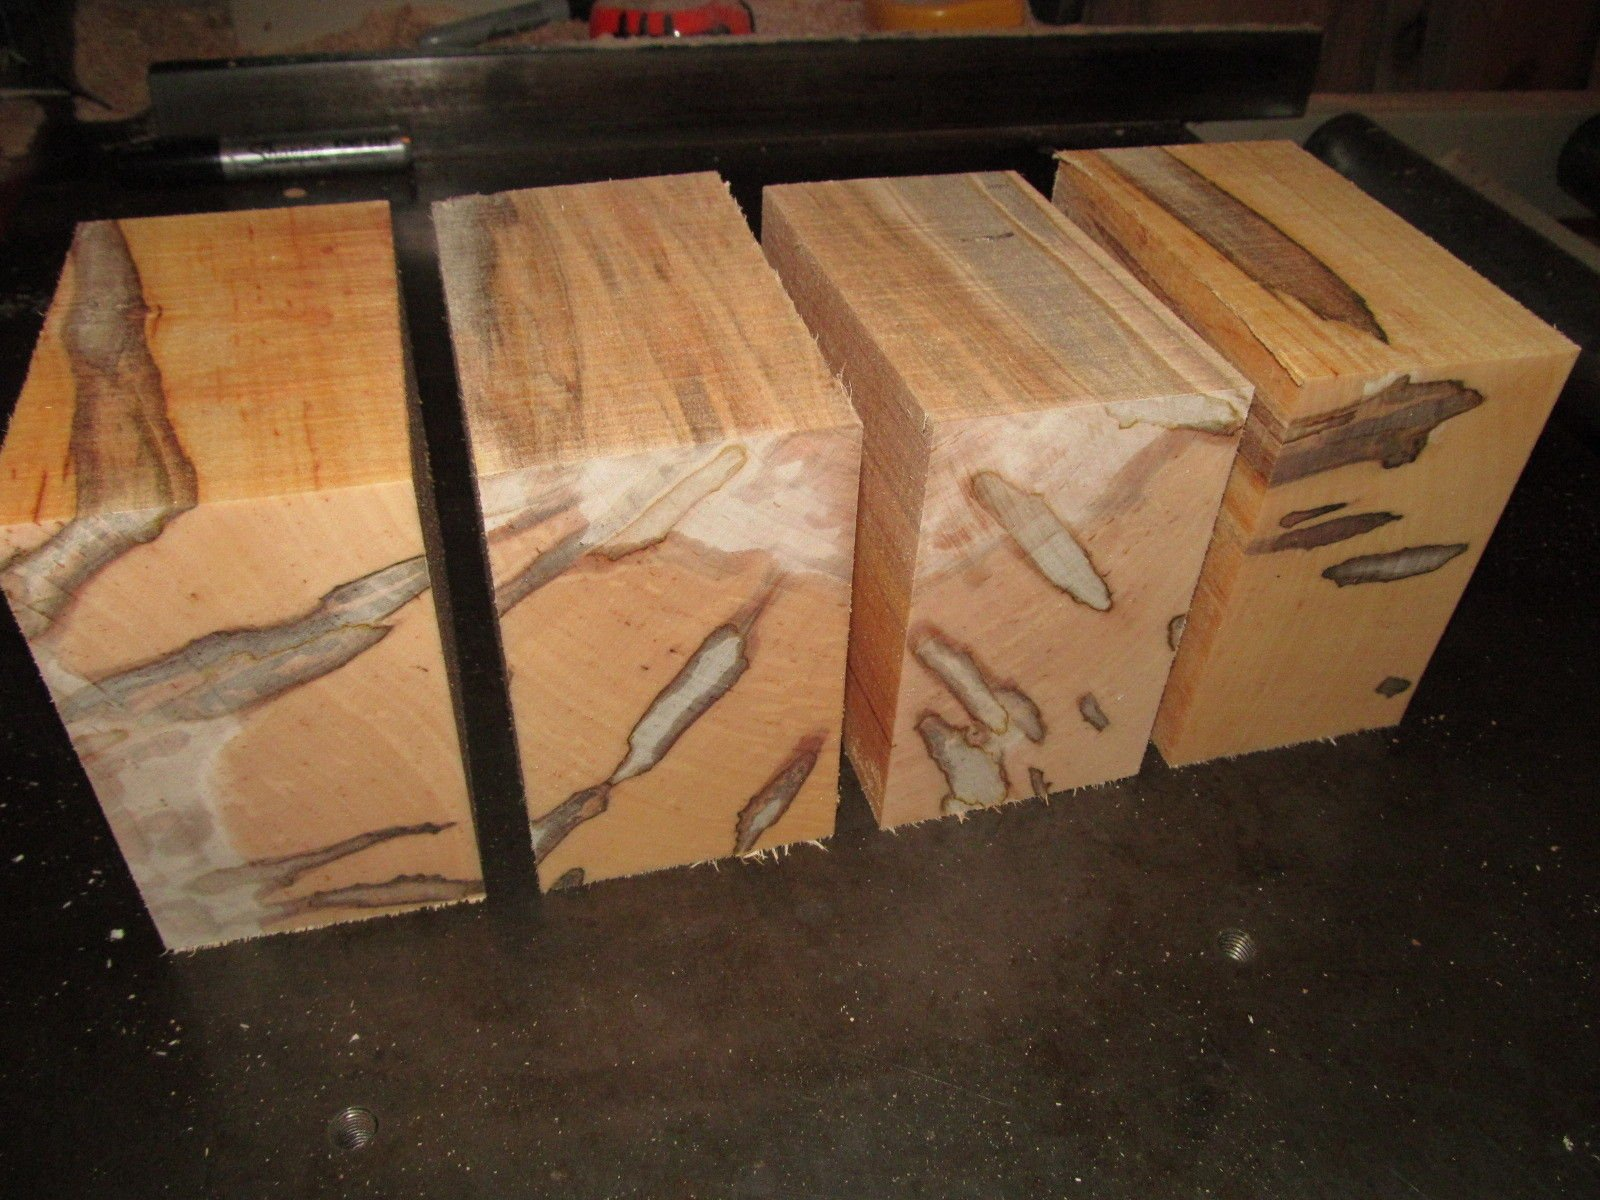 (Ship from USA) FOUR (4) AMBROSIA MAPLE BOWL BLANKS LUMBER WOOD LATHE CARVE 6 X 6 X 3'' *GWE849F EP-21RT117457 by Usongs Trading INC